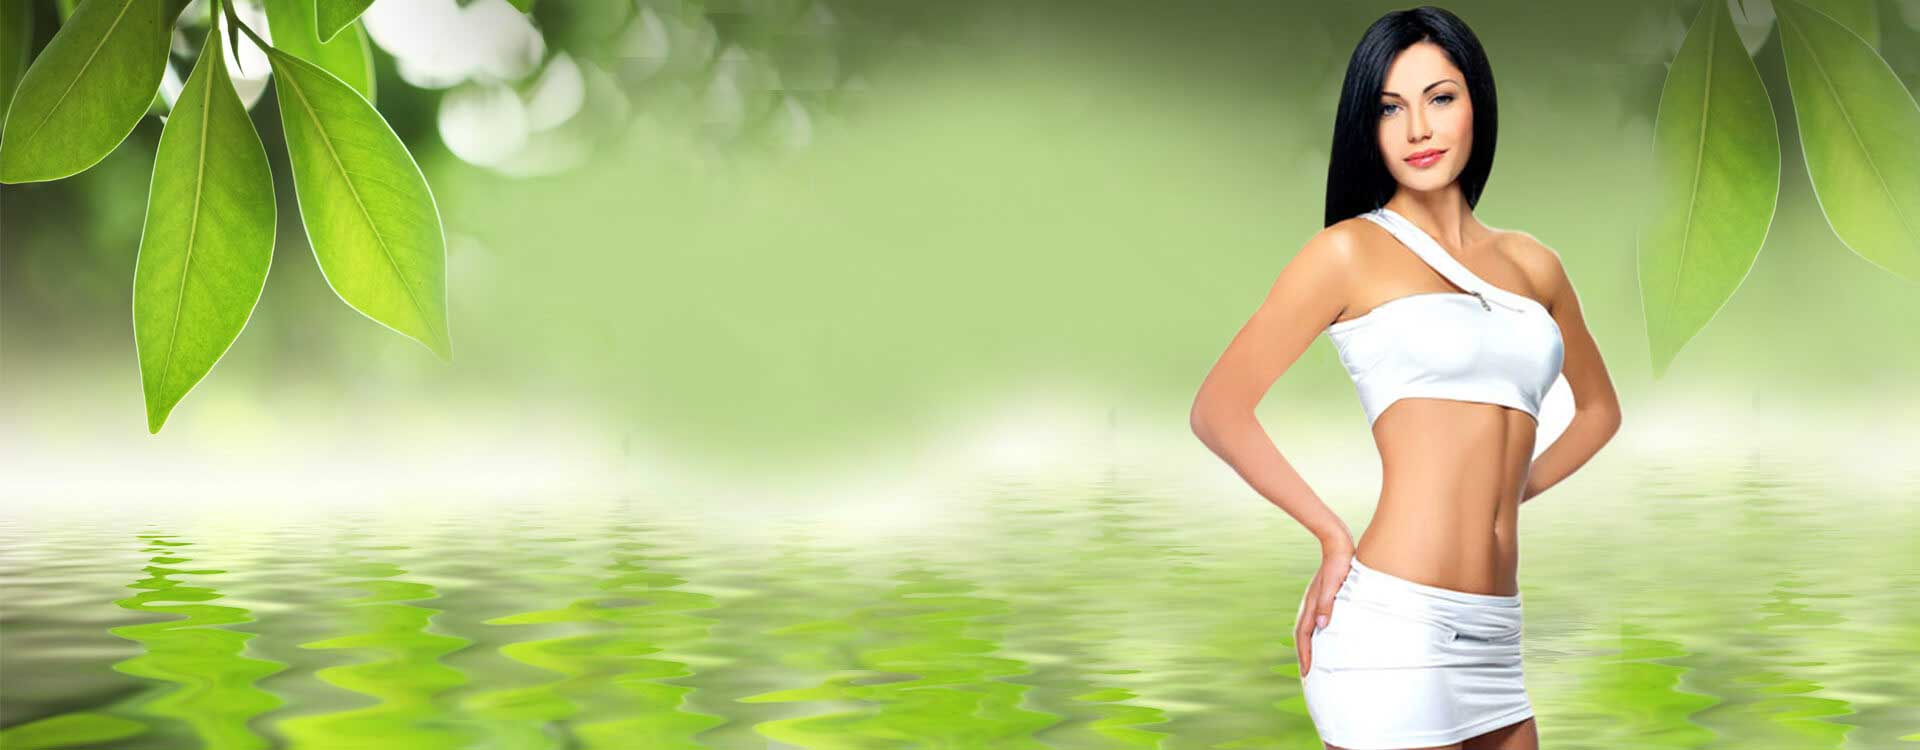 Weight Loss, Slimming, Skin Care and Anti-Aging chain of